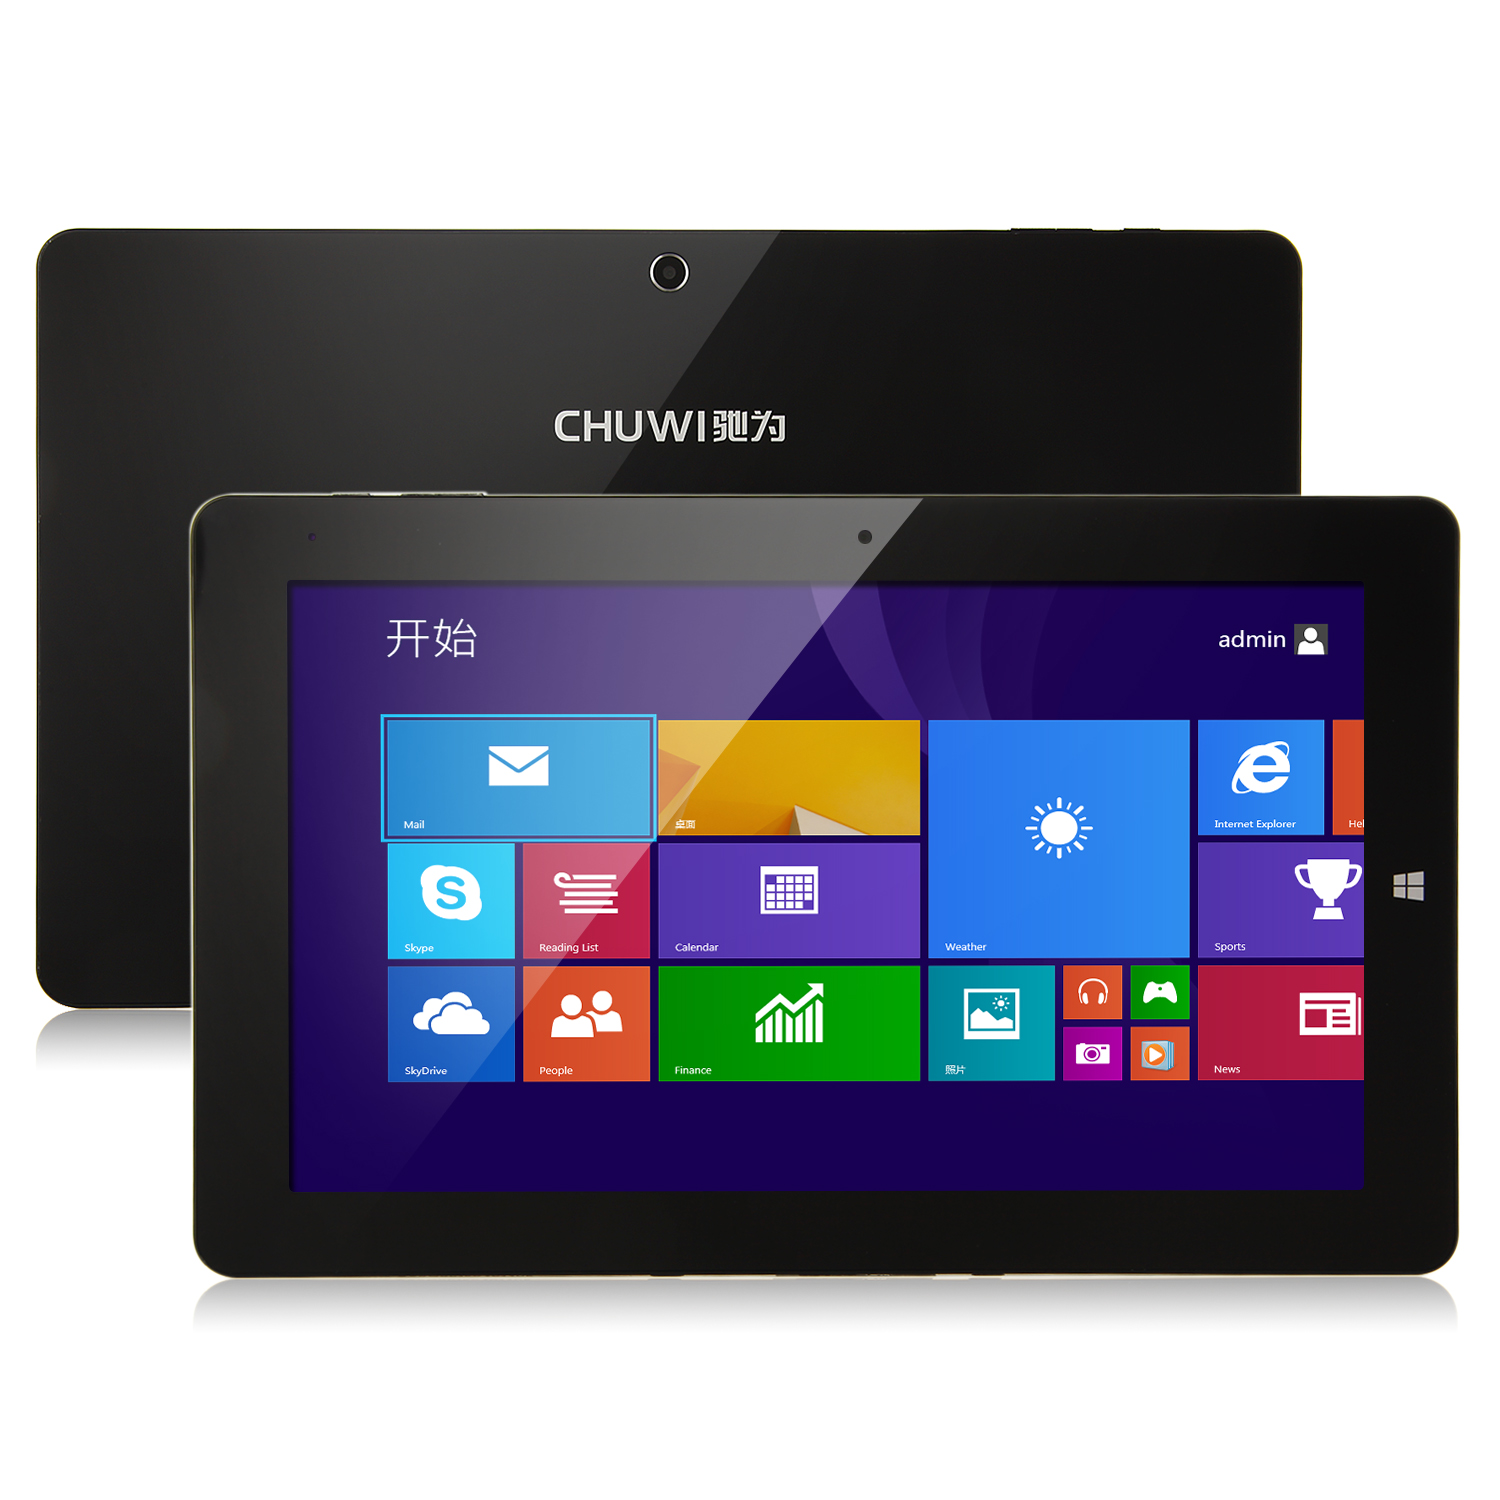 "CHUWI Vi10 Pro Tablet PC Dual Boot Intel Z3736F Quad Core 64Bit 10.6"" 2GB 64GB Black"